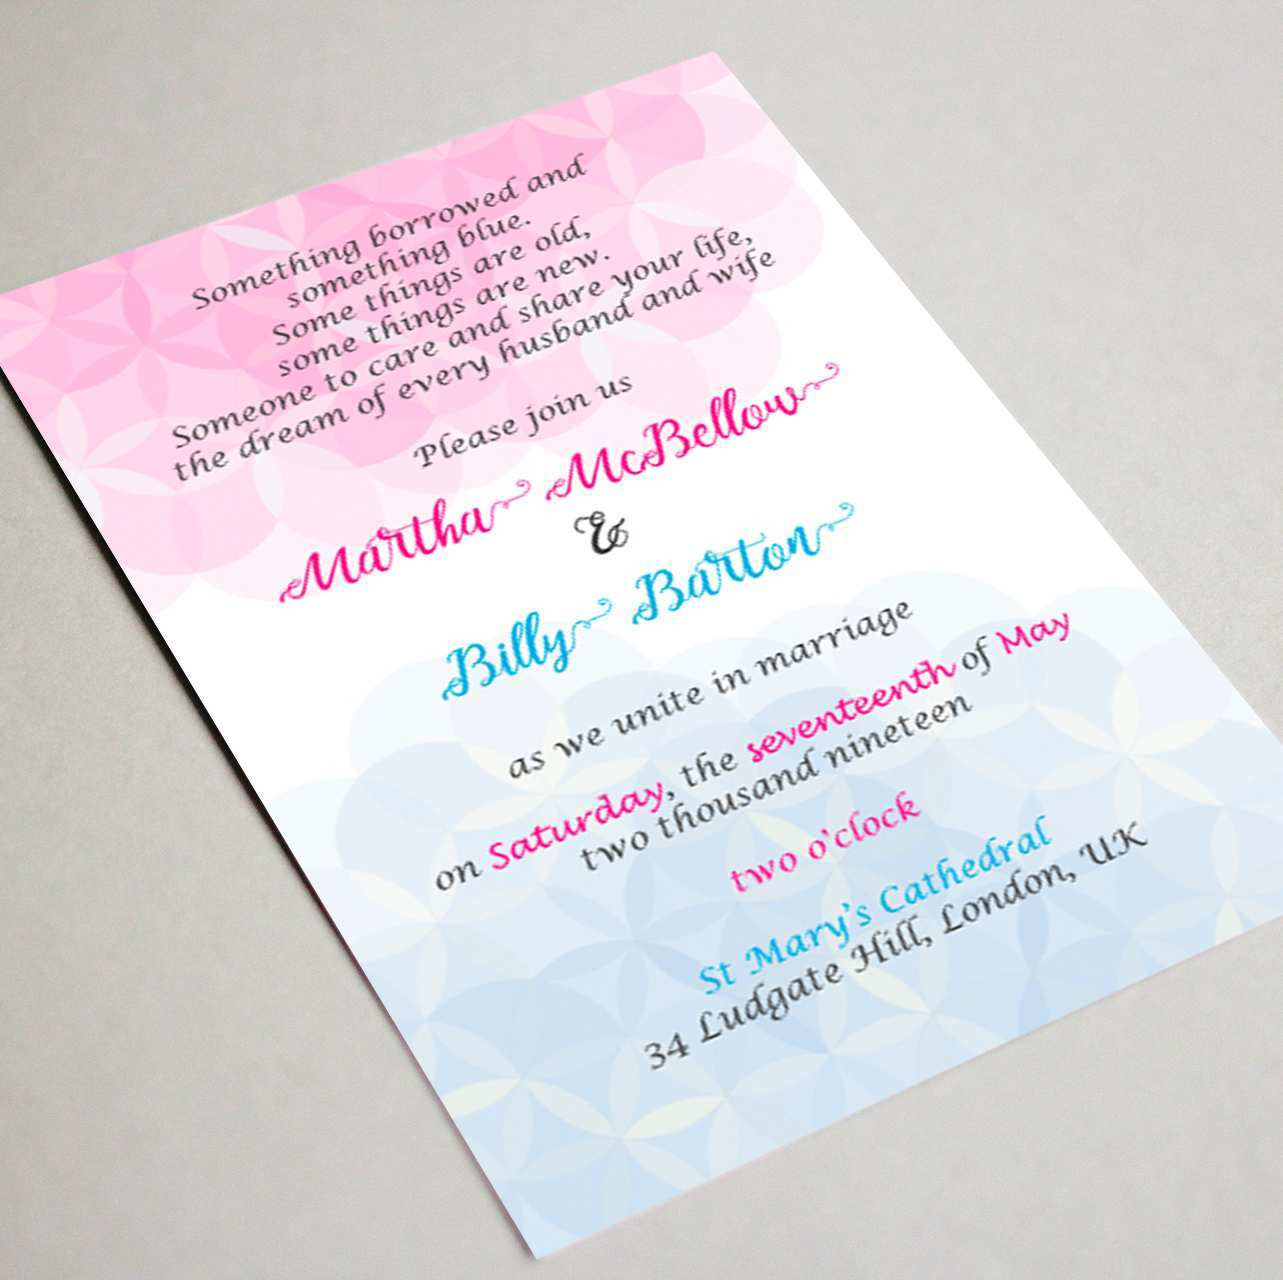 46 Online Invitation Card Format For Marriage in Photoshop by Invitation Card Format For Marriage